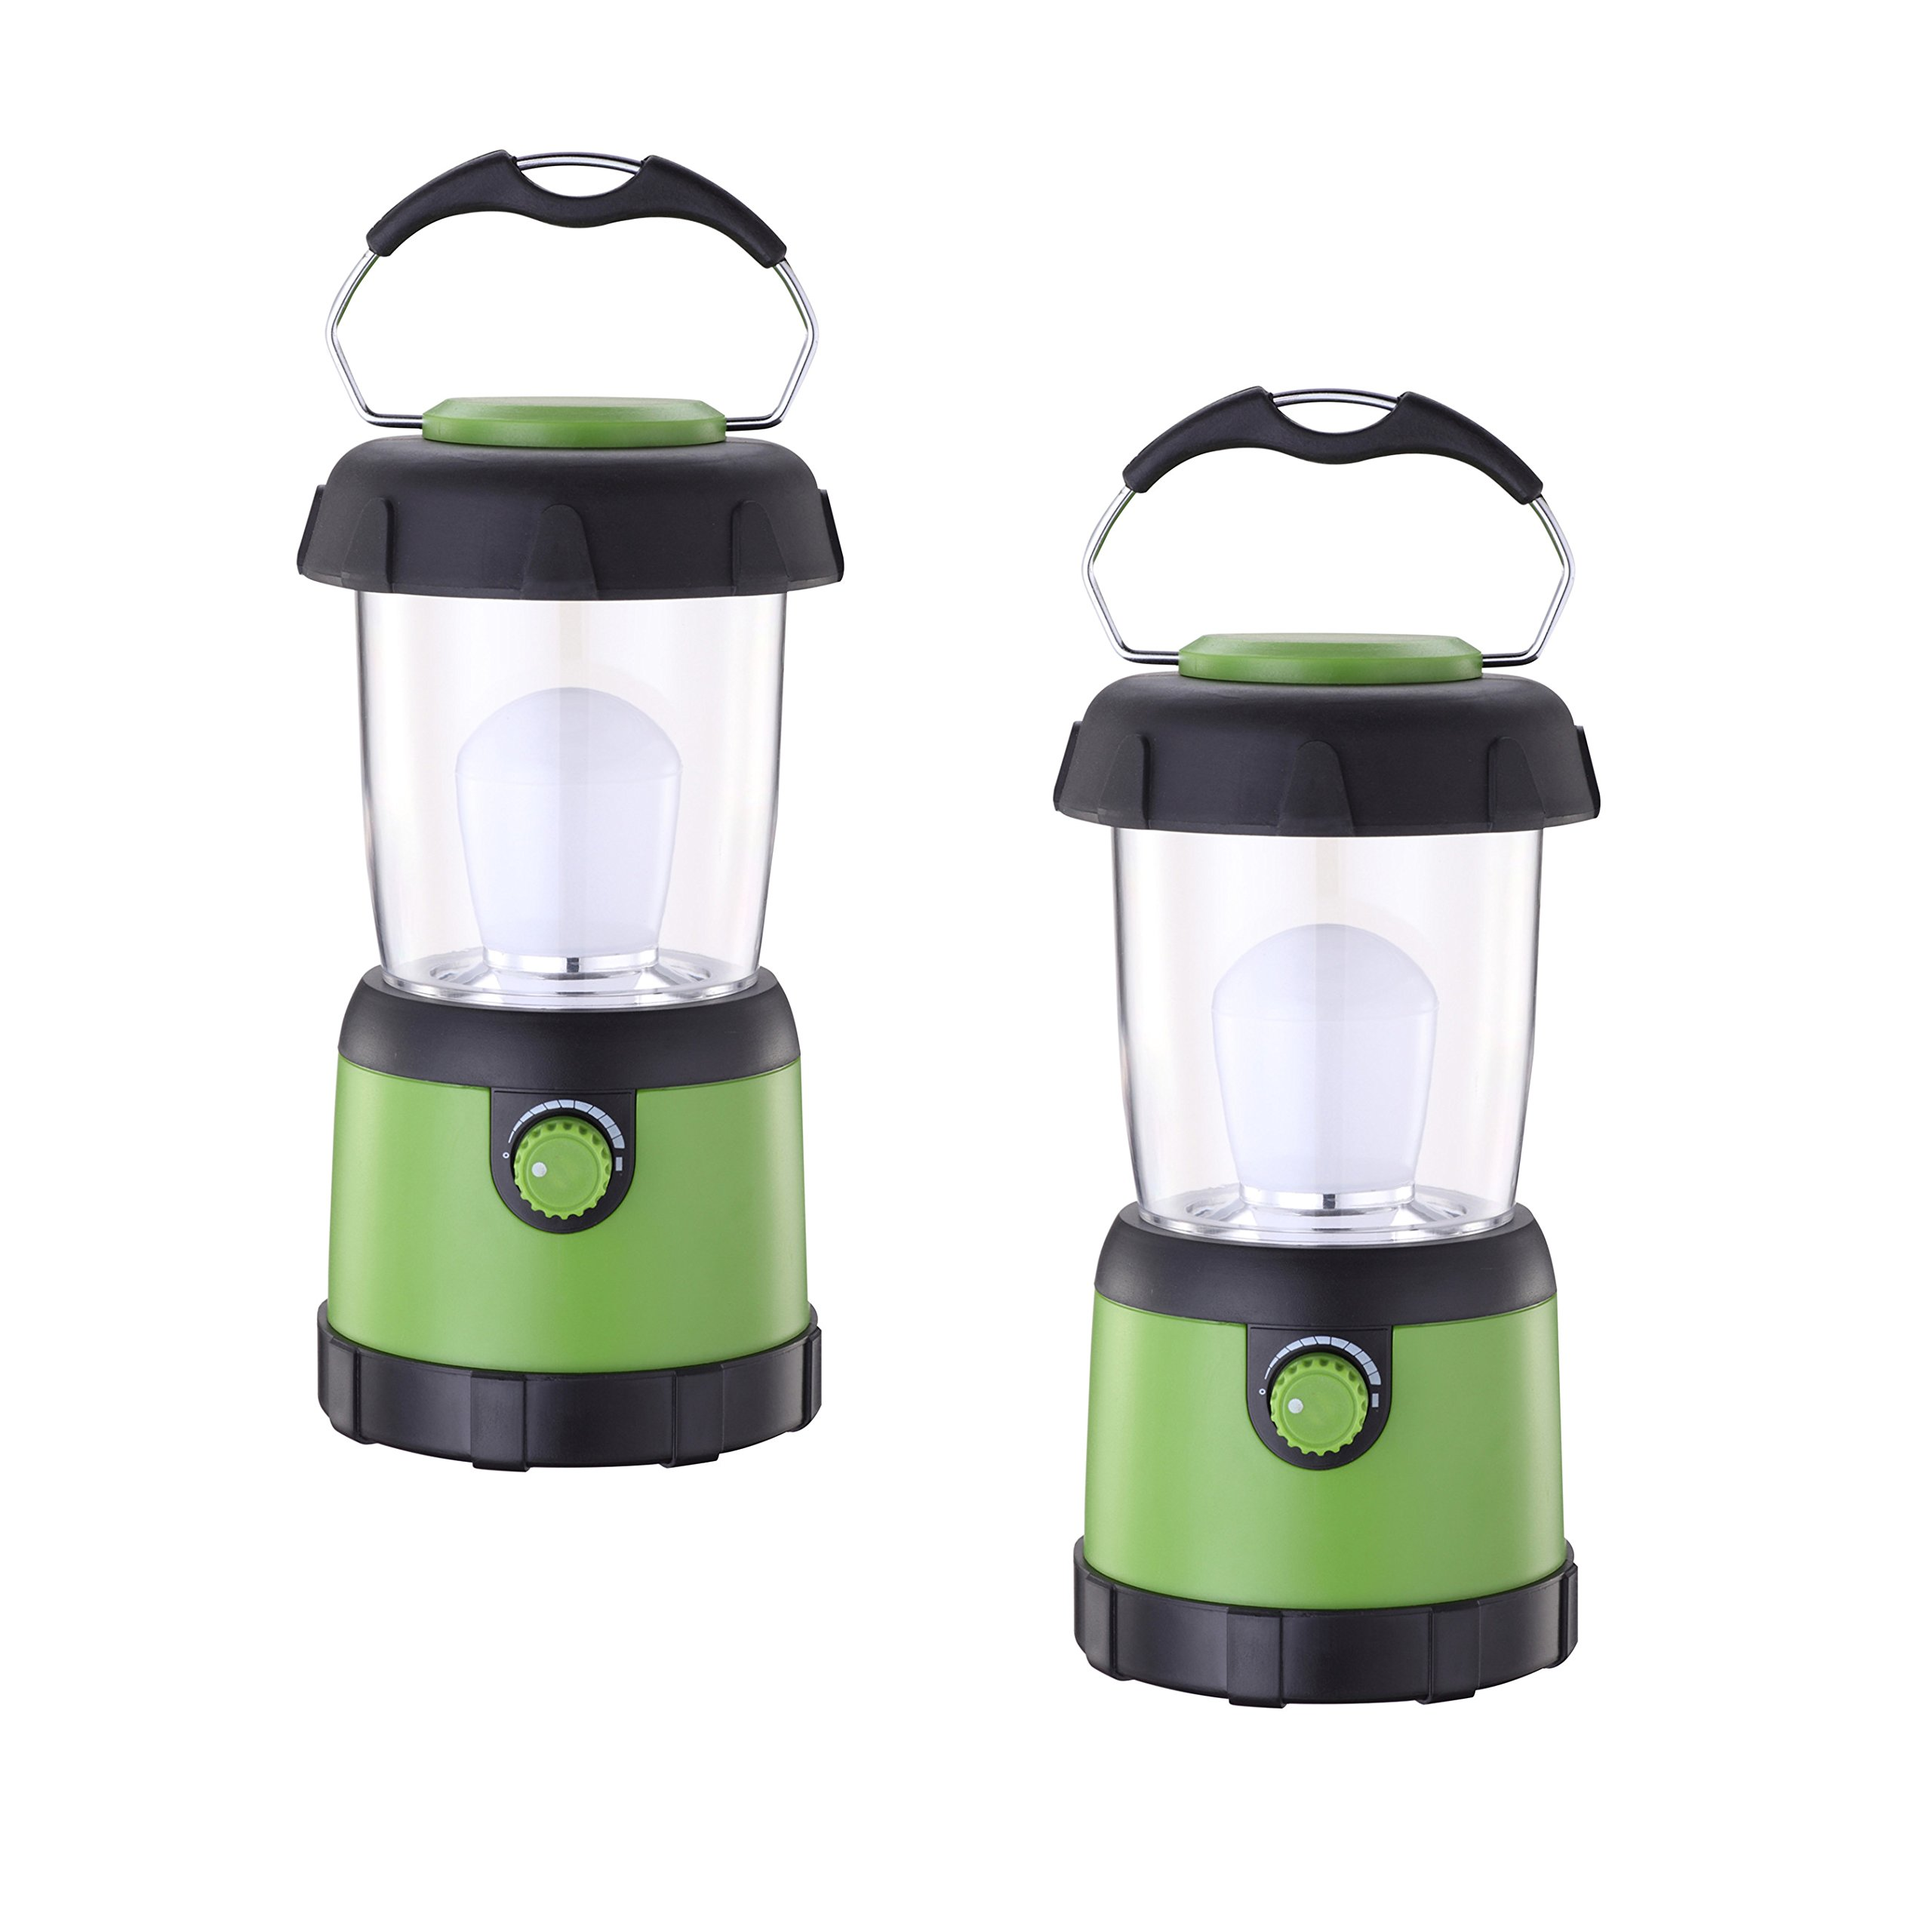 2 PACK Portable Green Camping Lantern Lights Waterproof Outdoor Camping Lantern Flashlight for Emergency, Hurricane, Outage(4AA Battery Powered) (Small-2pack)